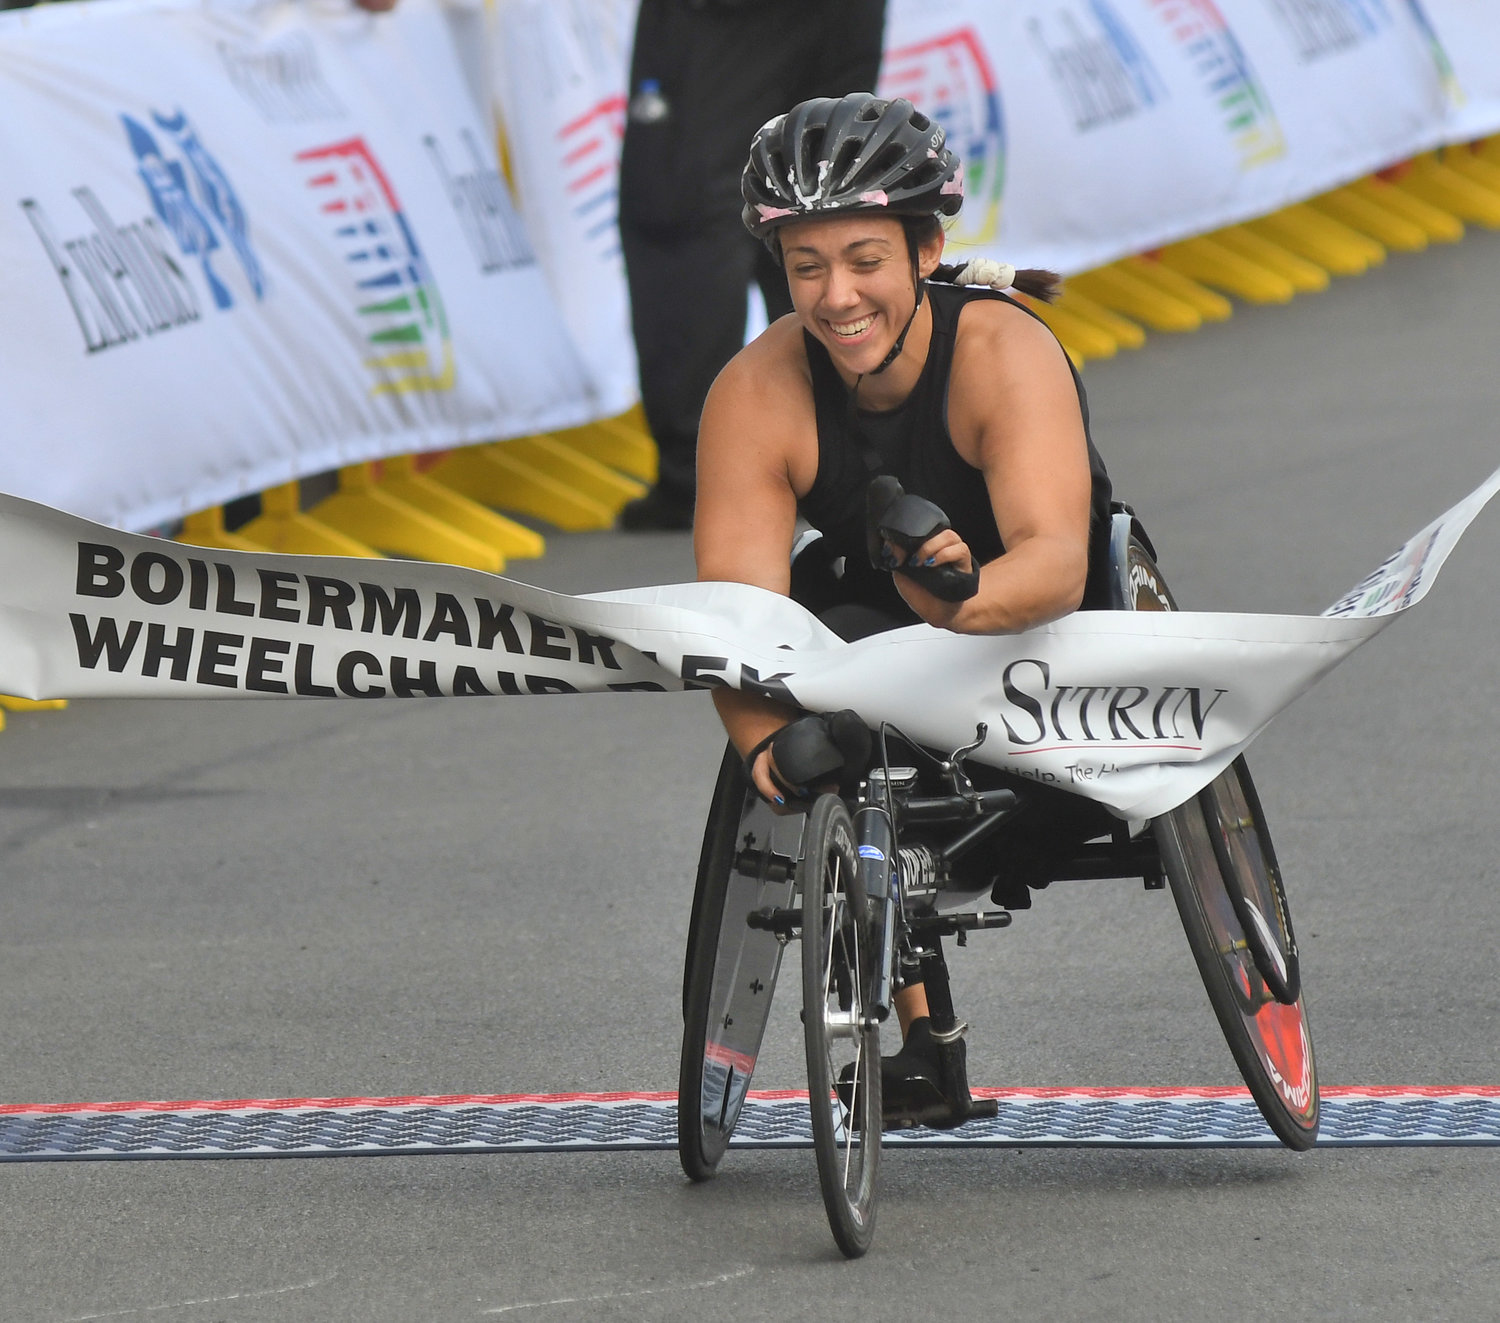 WOMEN'S CHAMP — Women's wheelchair division winner Jenna Fesemyer, 22, of Illinois won her first Boilermaker title with a time of 43:07.